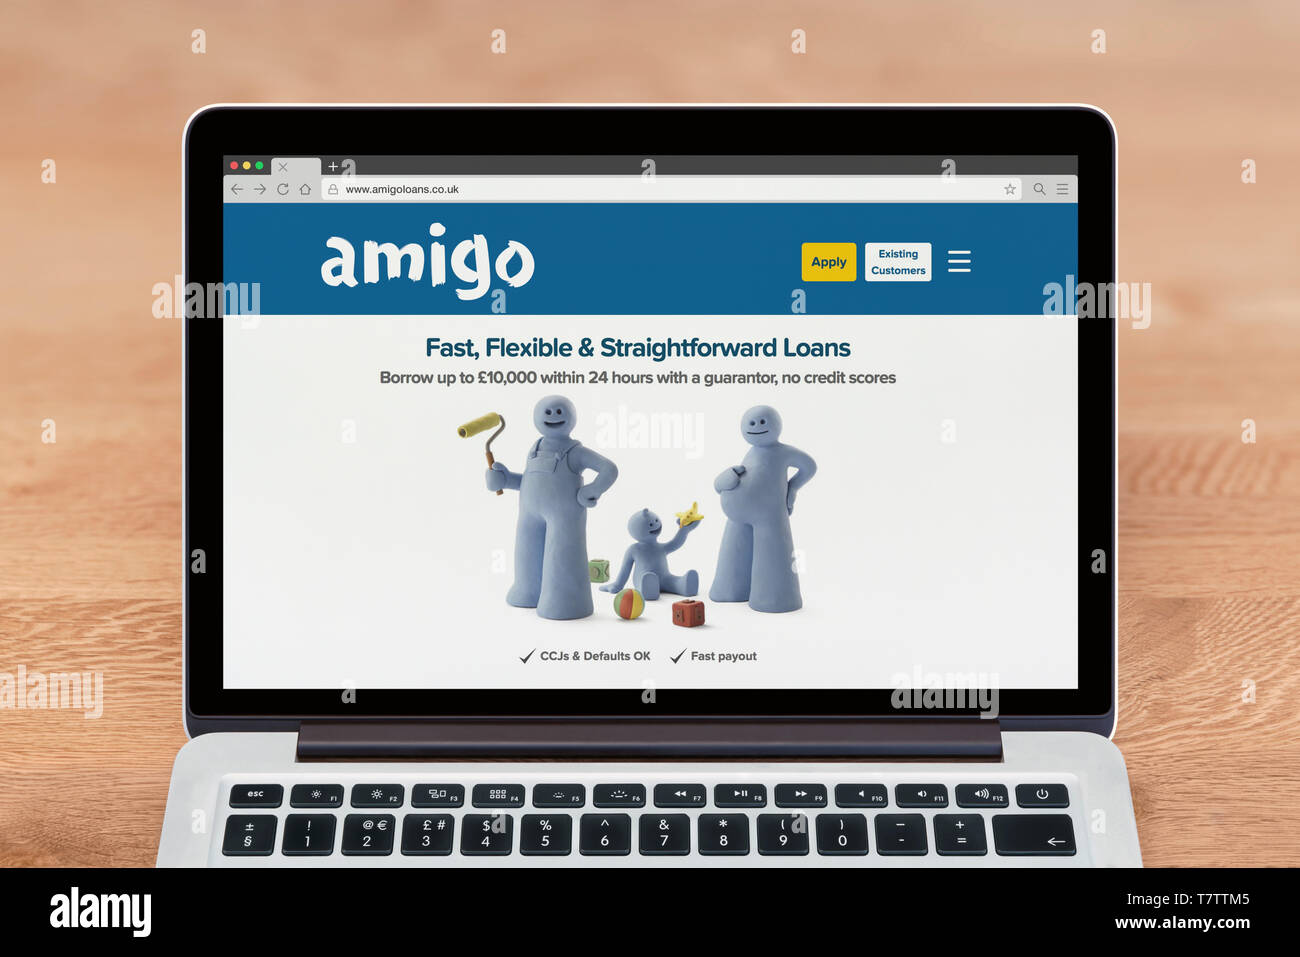 An Apple Macbook displays the Amigo Loans website (Editorial use only). - Stock Image